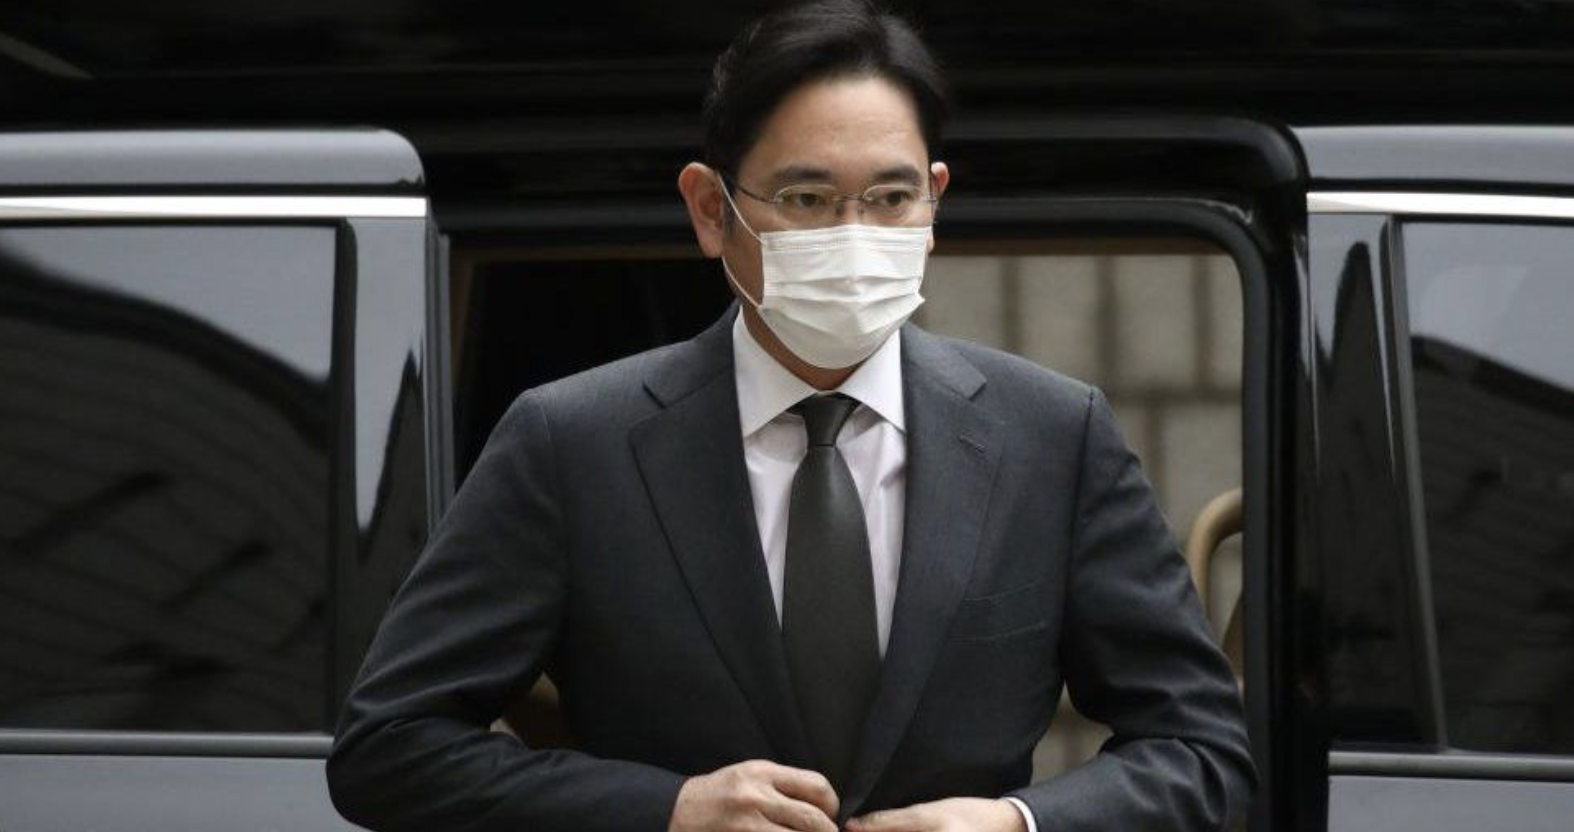 Lee Jae Yong: Samsung Heir Gets Prison Term for Bribery Scandal